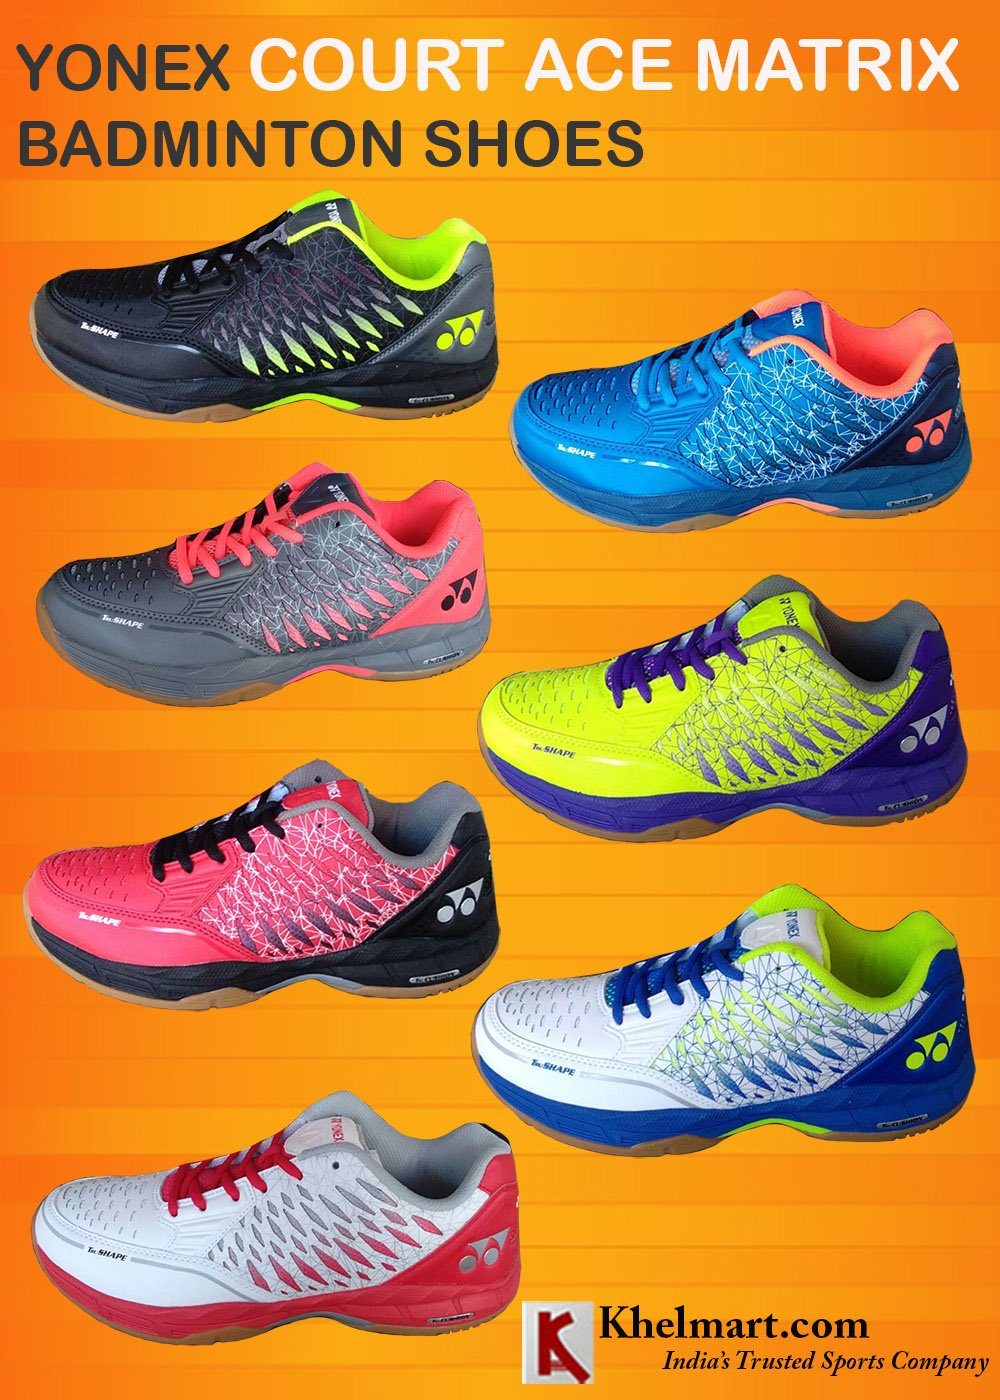 Yonex-Court-ACE-Matrix-Badminton-Shoes_2.jpg